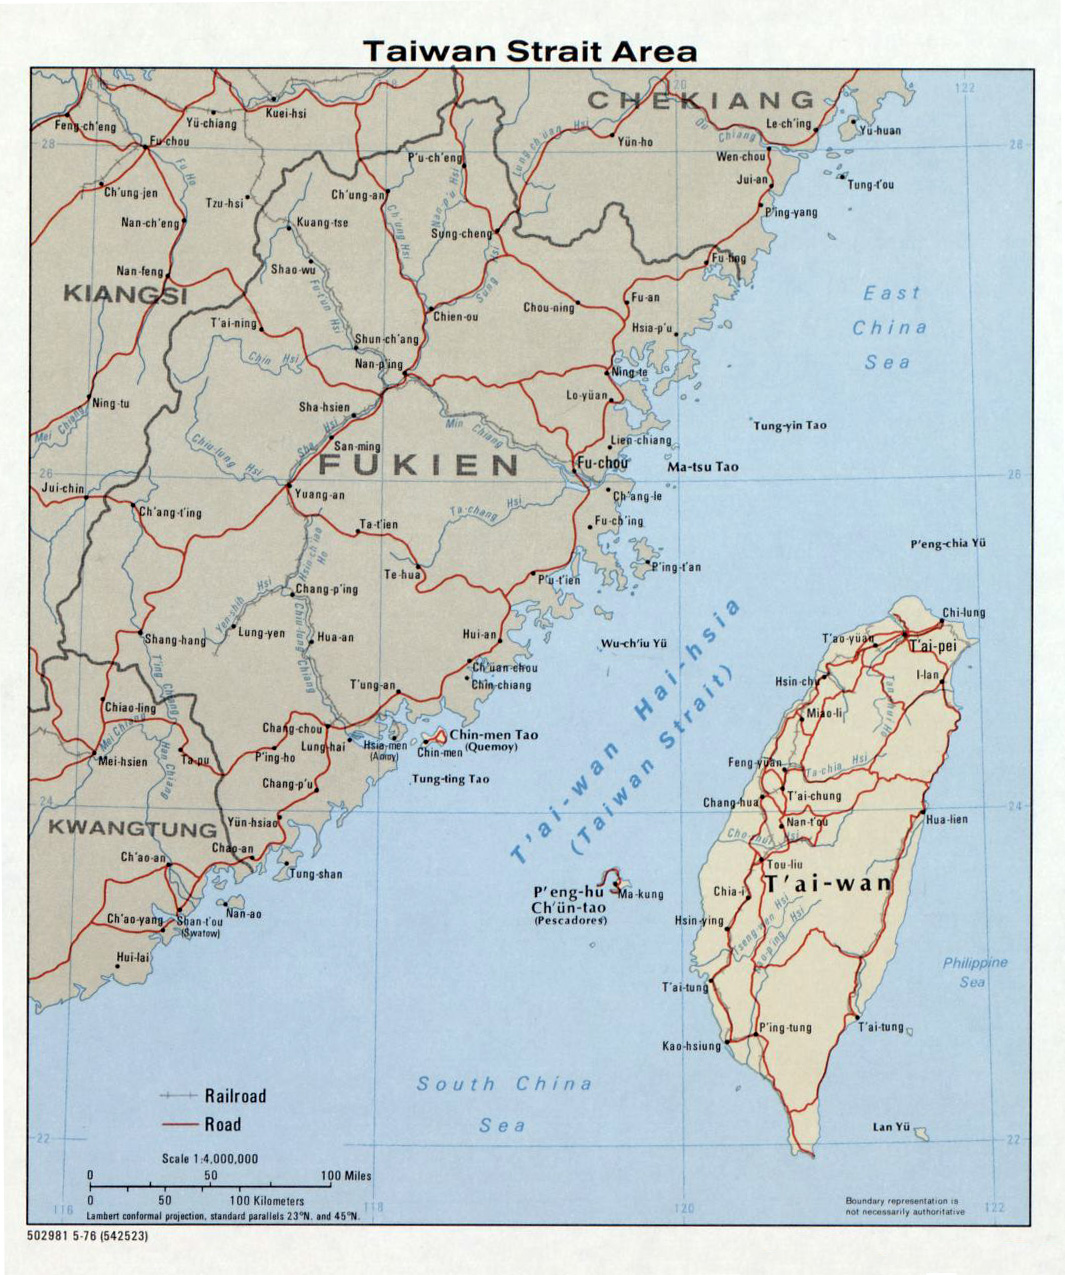 Maps of taiwan detailed map of taiwan in english tourist map of large taiwan strait area map 1976 gumiabroncs Images